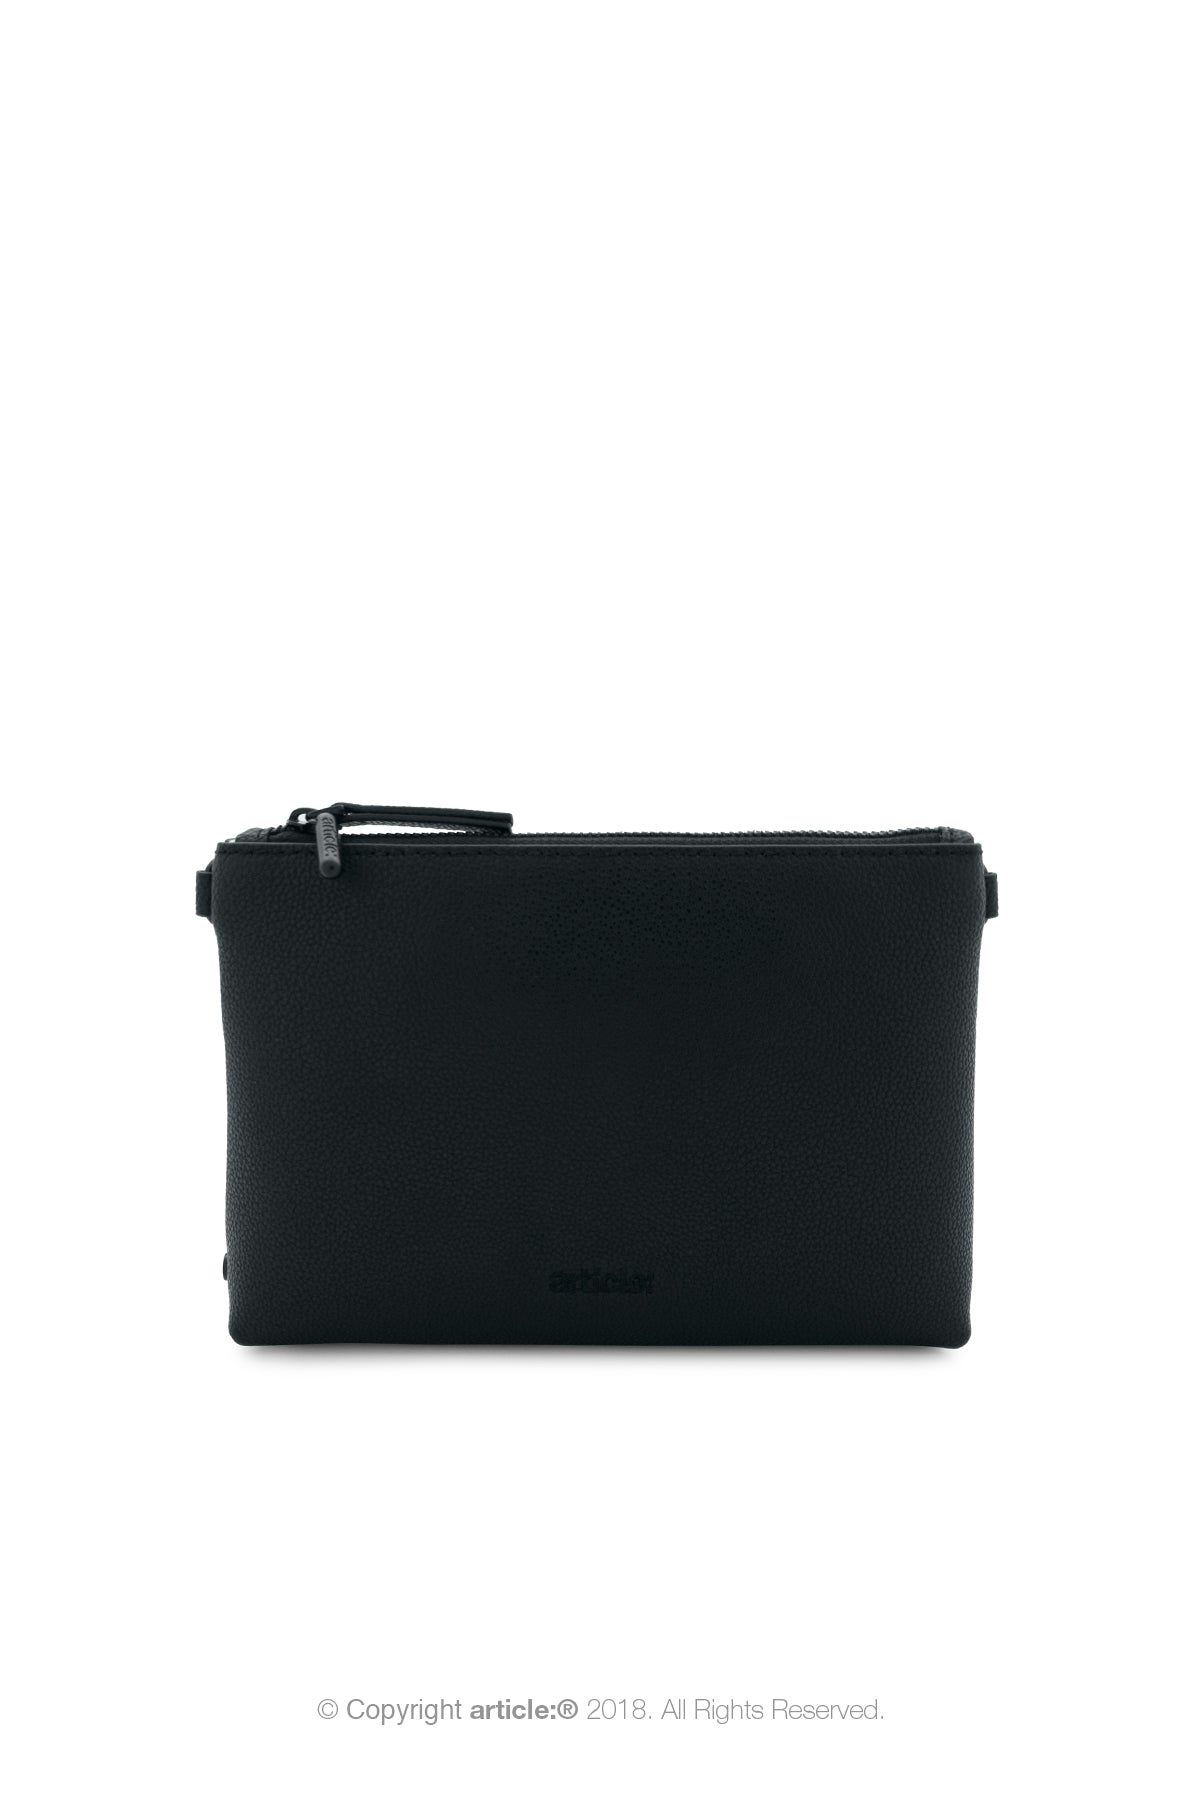 article: #003 Pochette Gusset Men - Noir